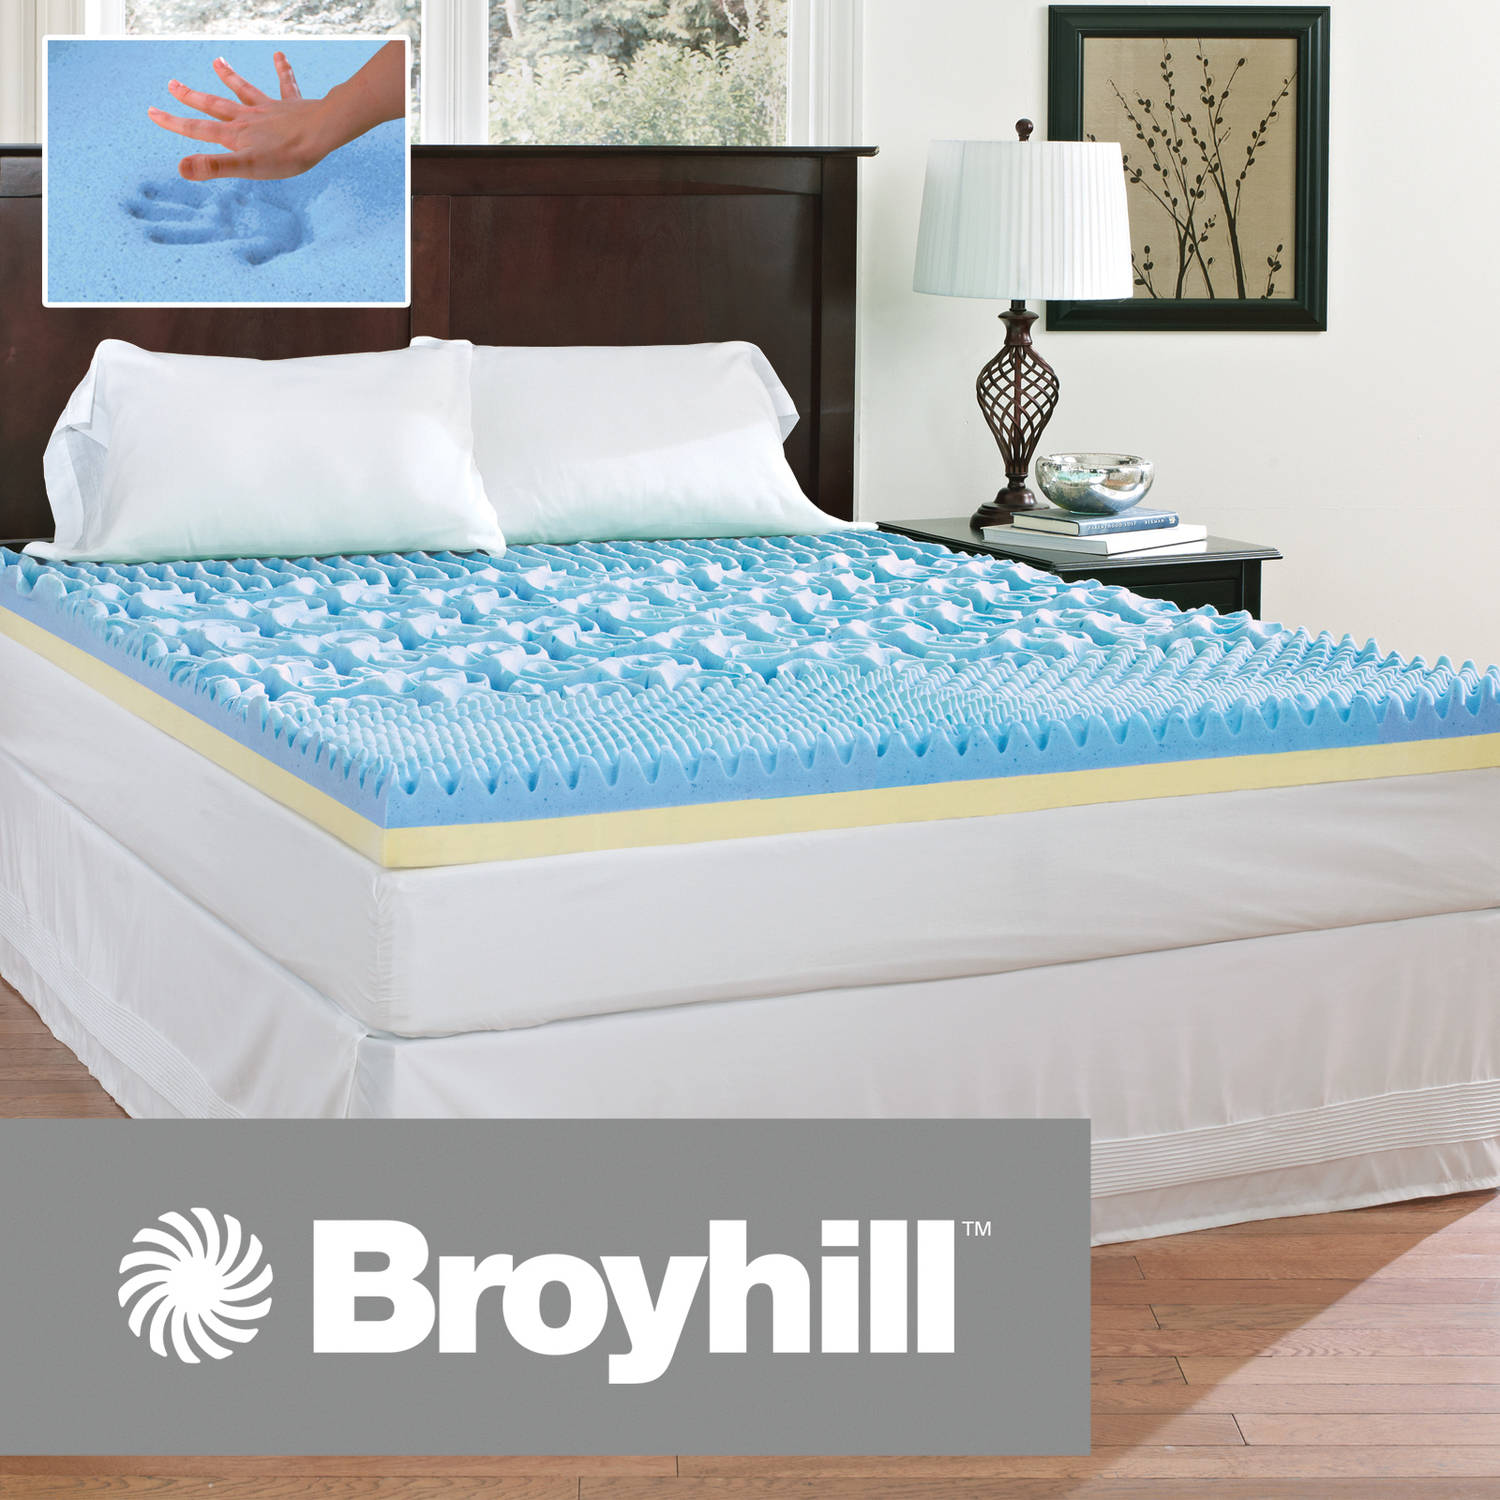 "Broyhill Comfort Temp 4"" Gel Memory Foam Mattress Topper"